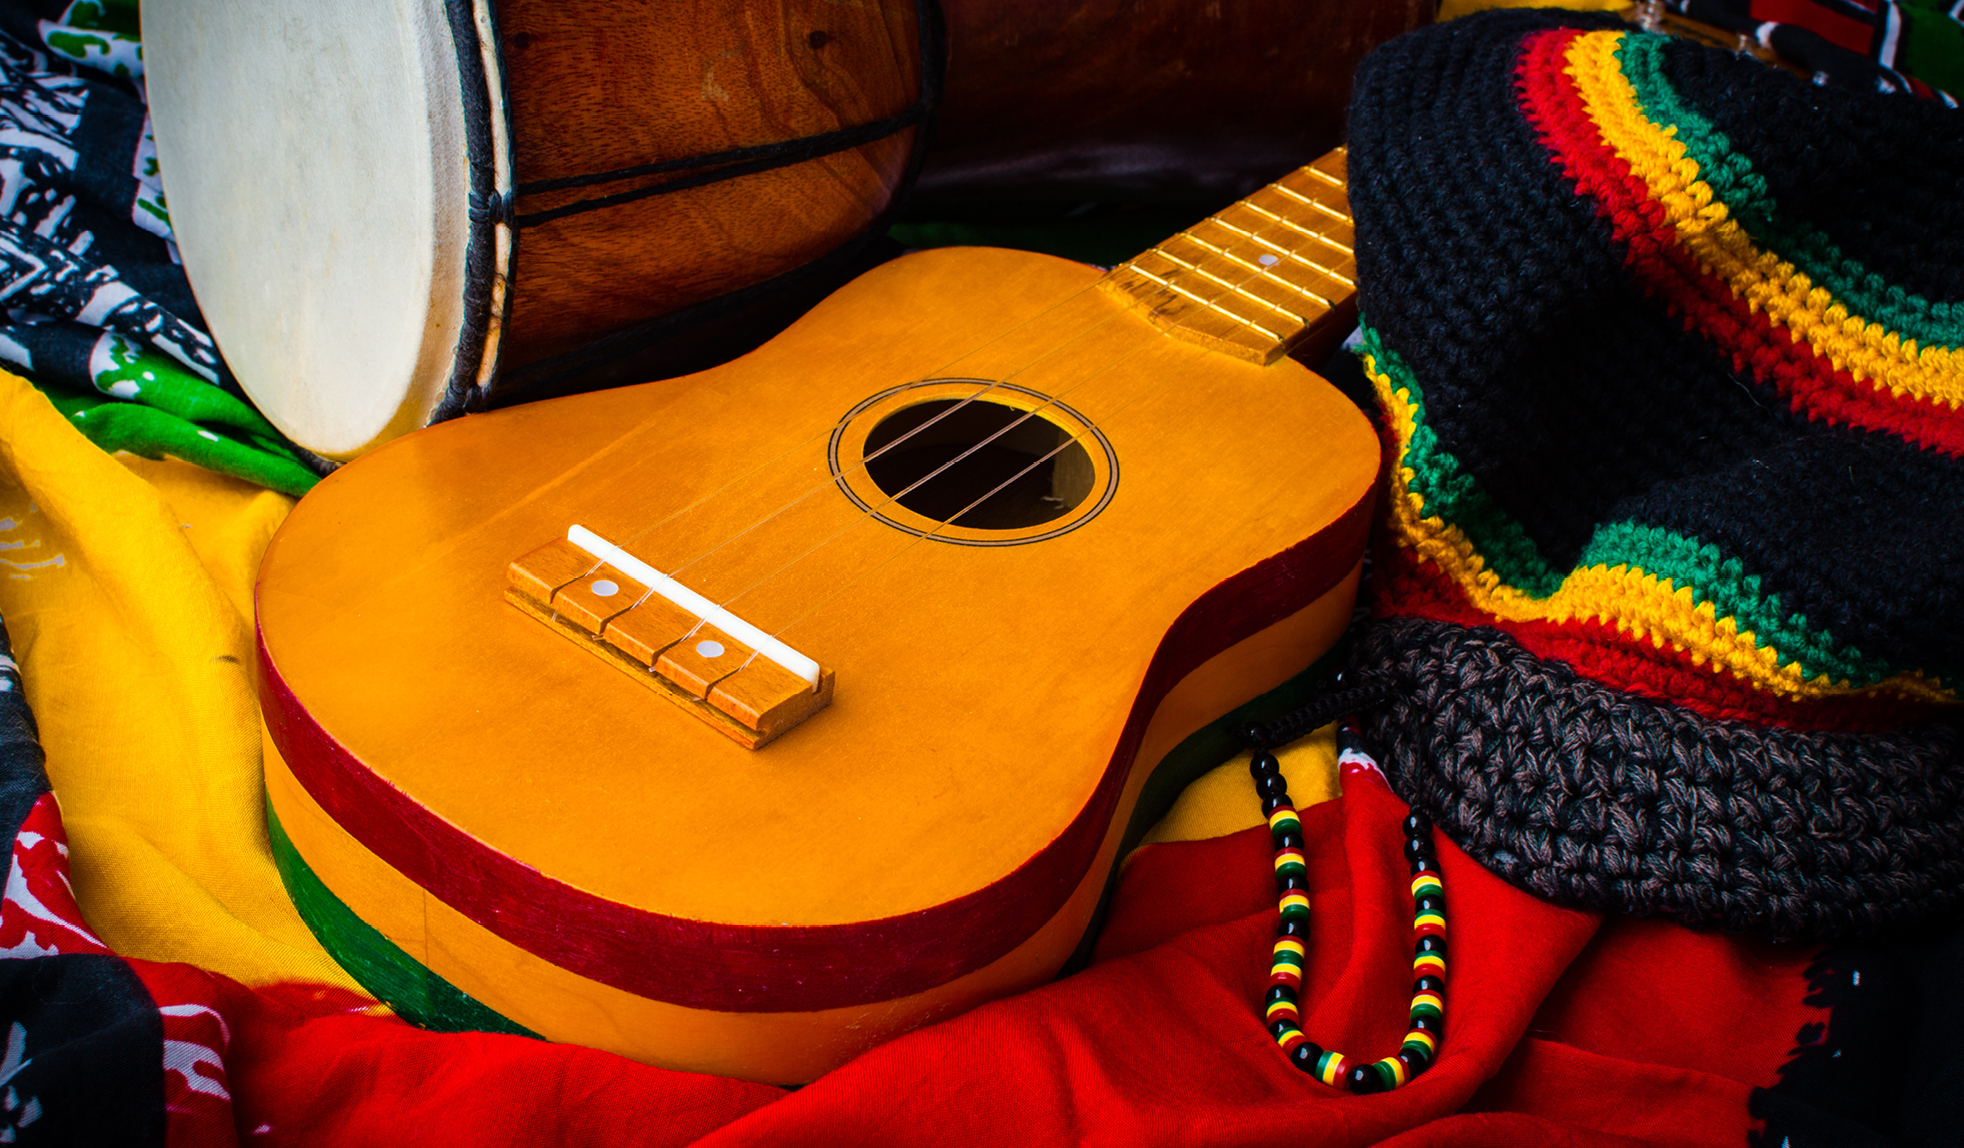 Our next Culture Bridge program at Flushing Library is a multicultural reggae concert!